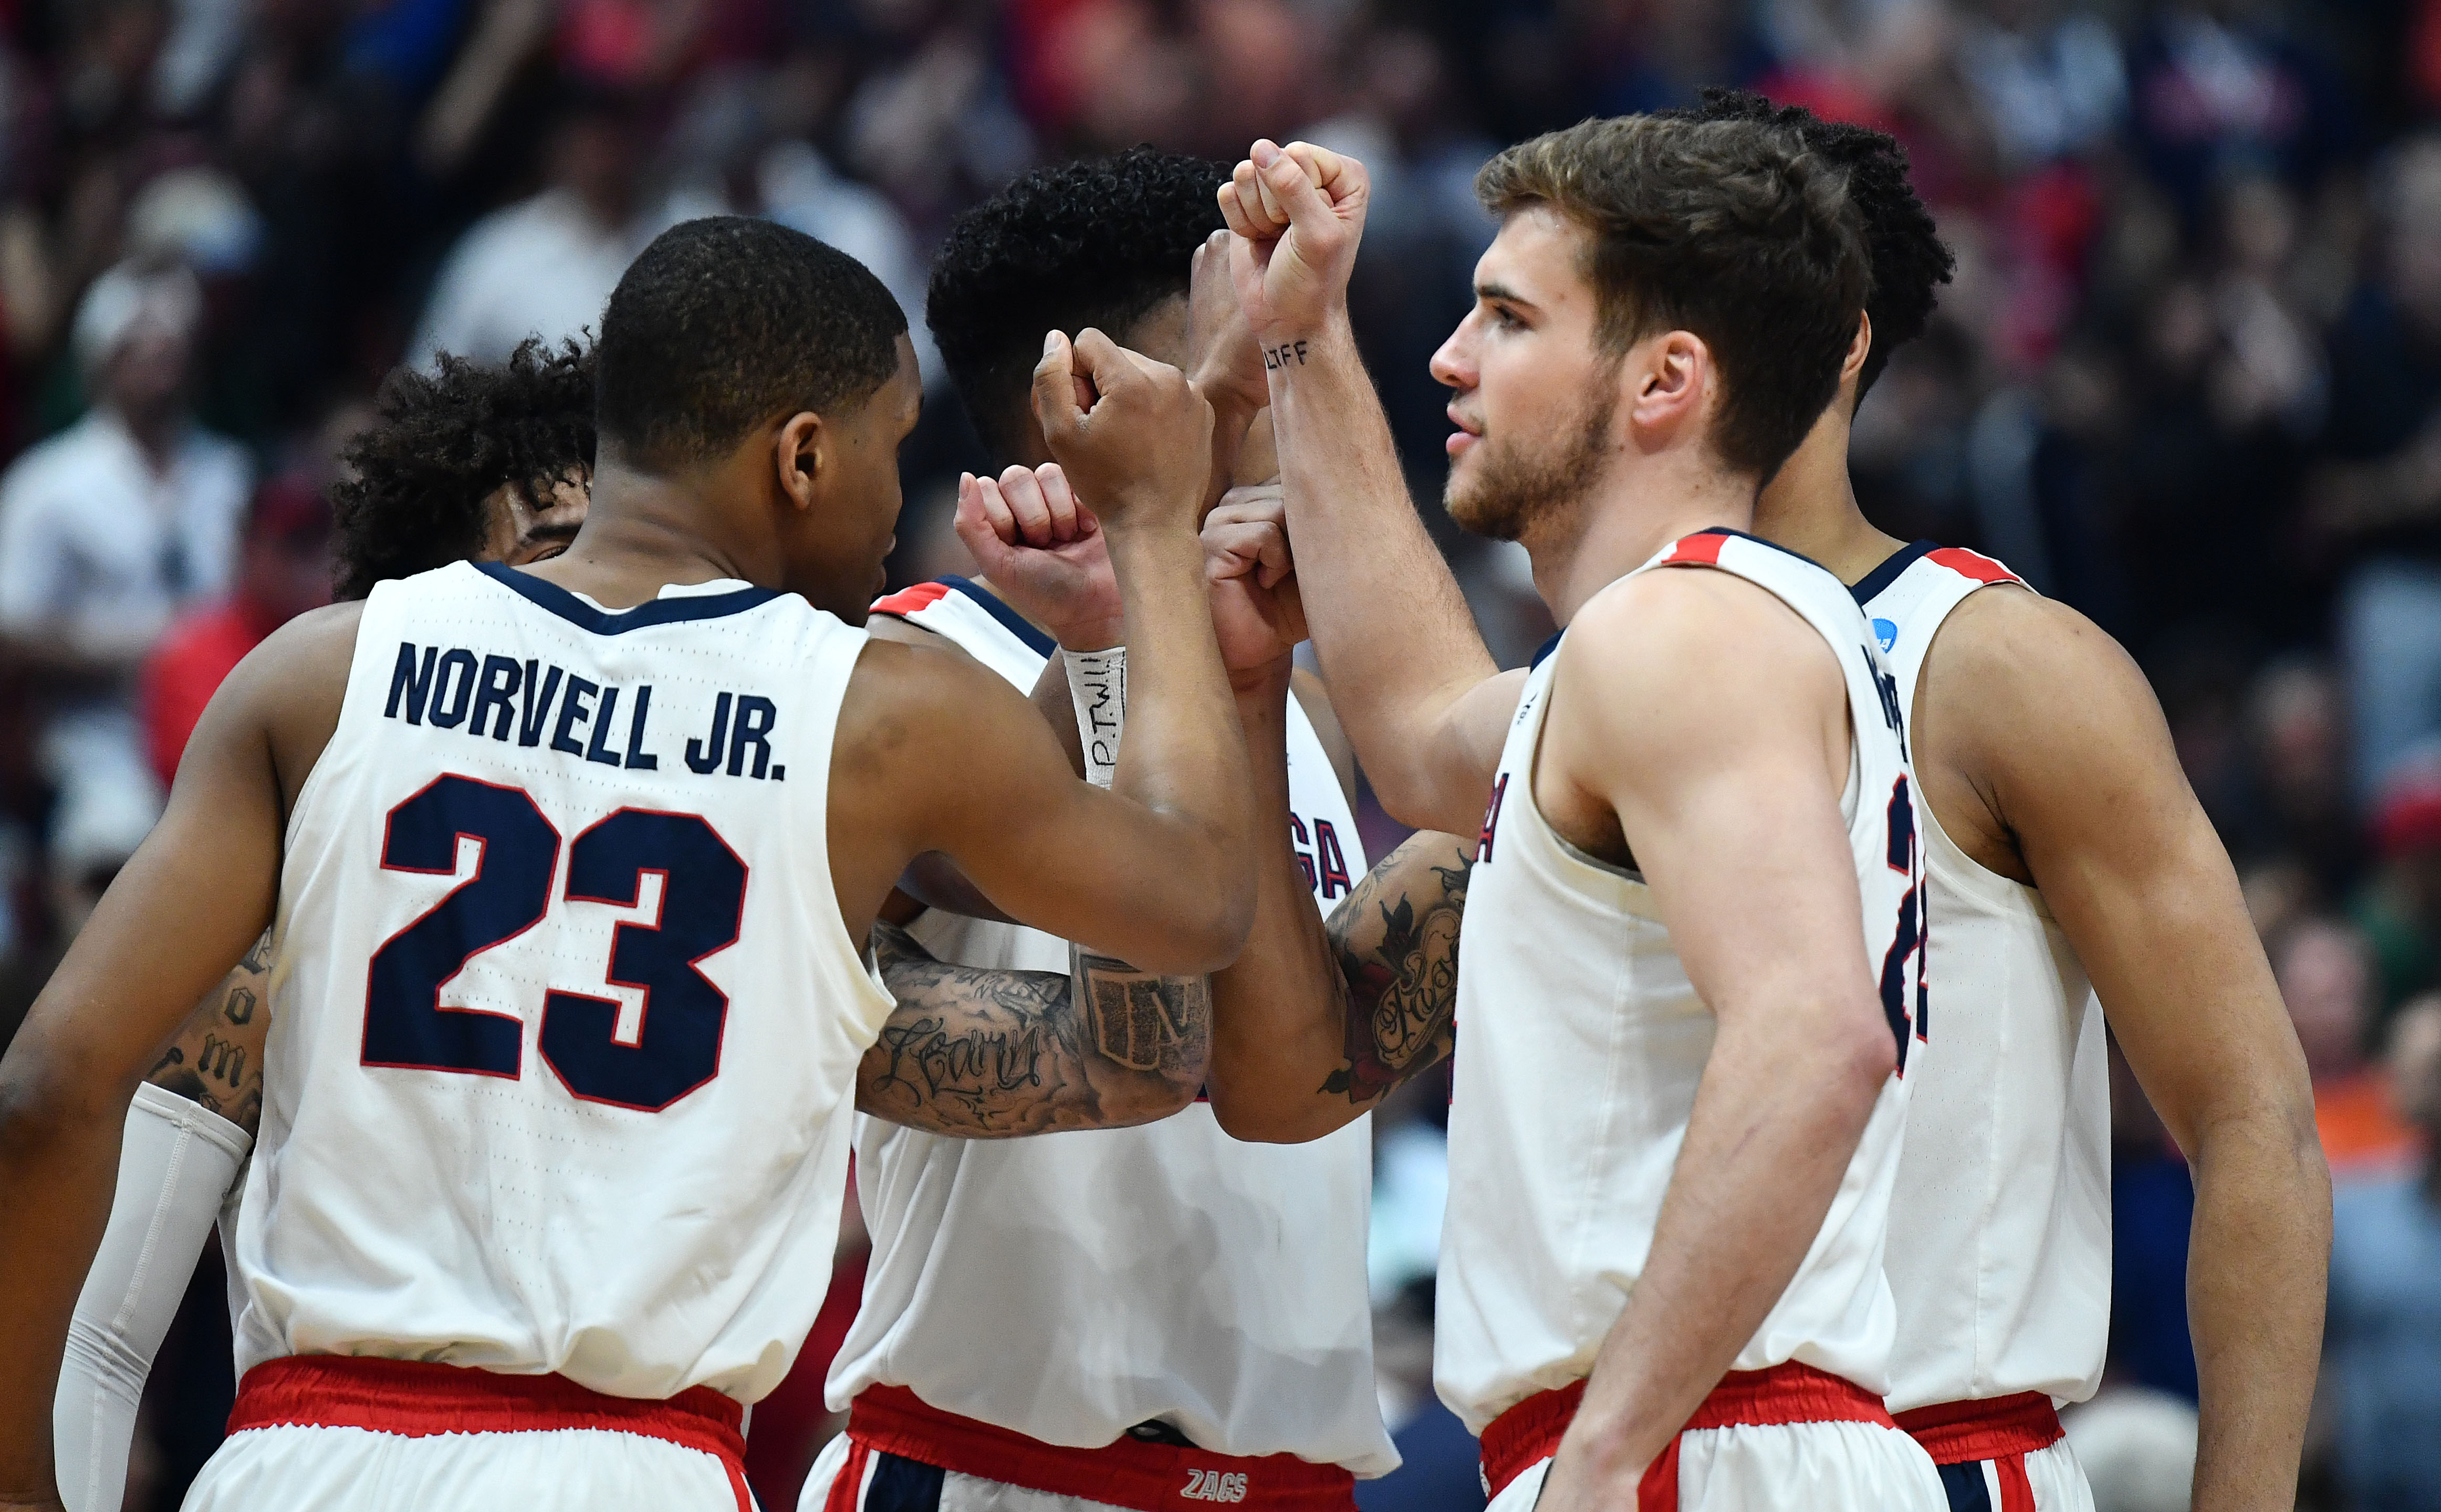 10 Observations about the 2018-19 Gonzaga Bulldogs - The